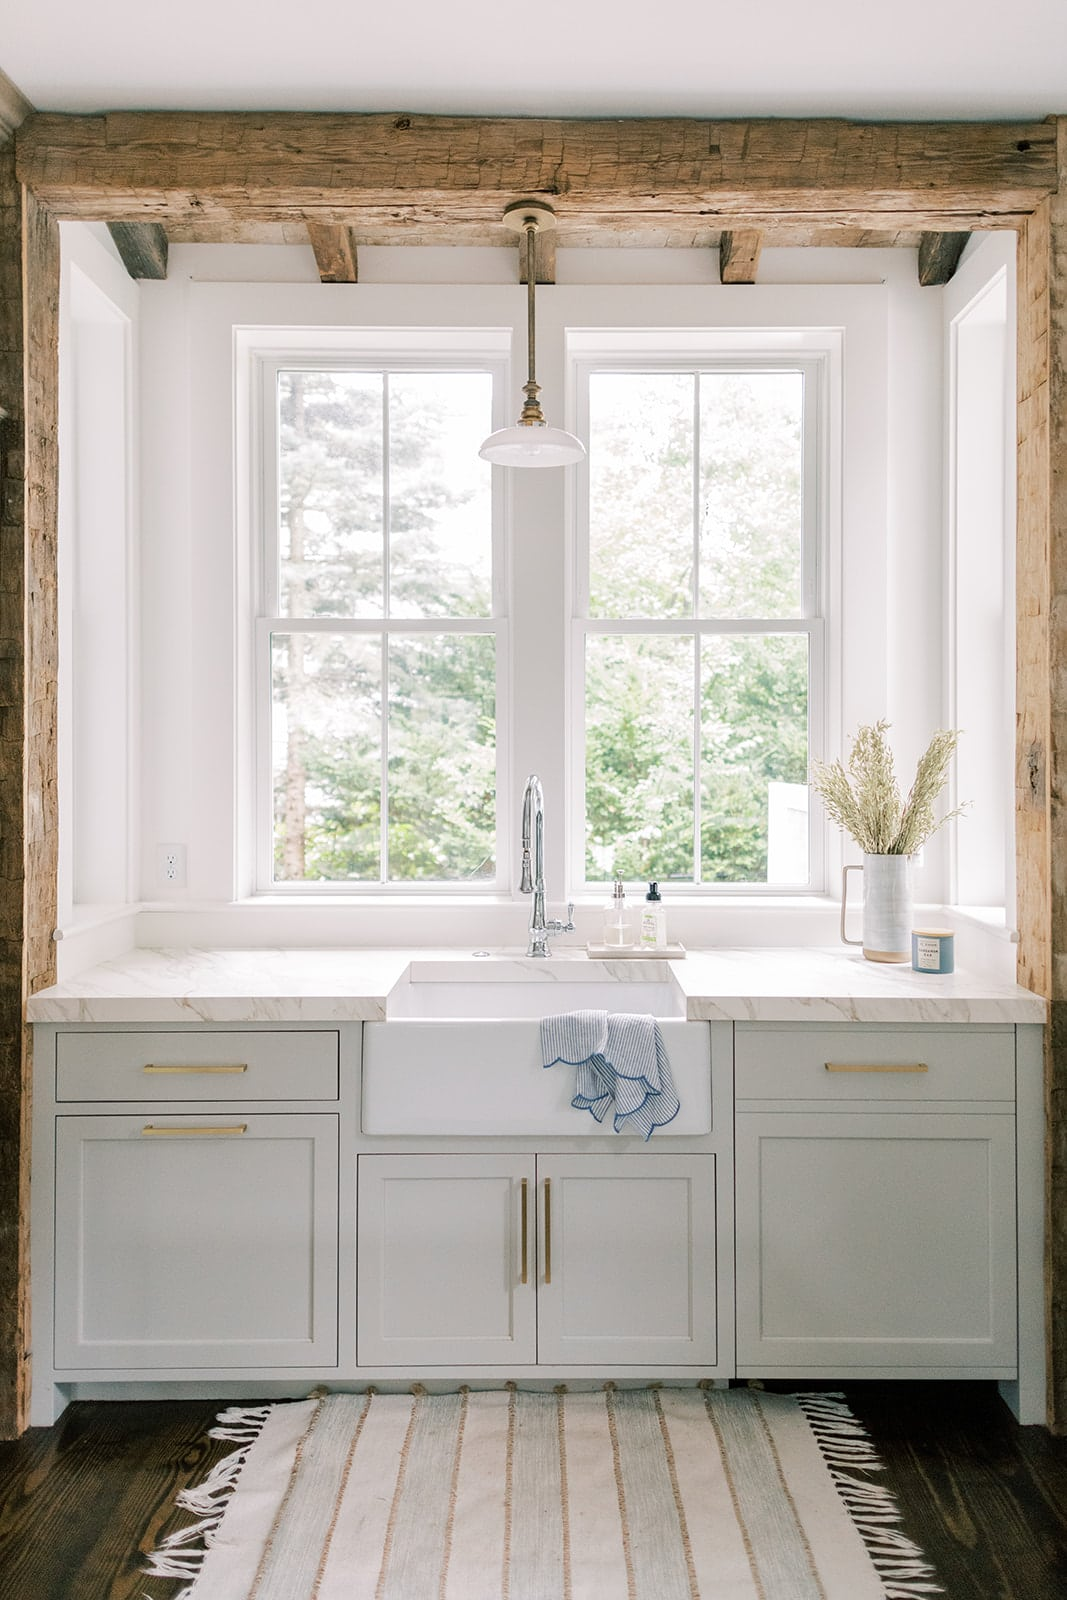 mixed metals on a farm sink New England home tour kitchen